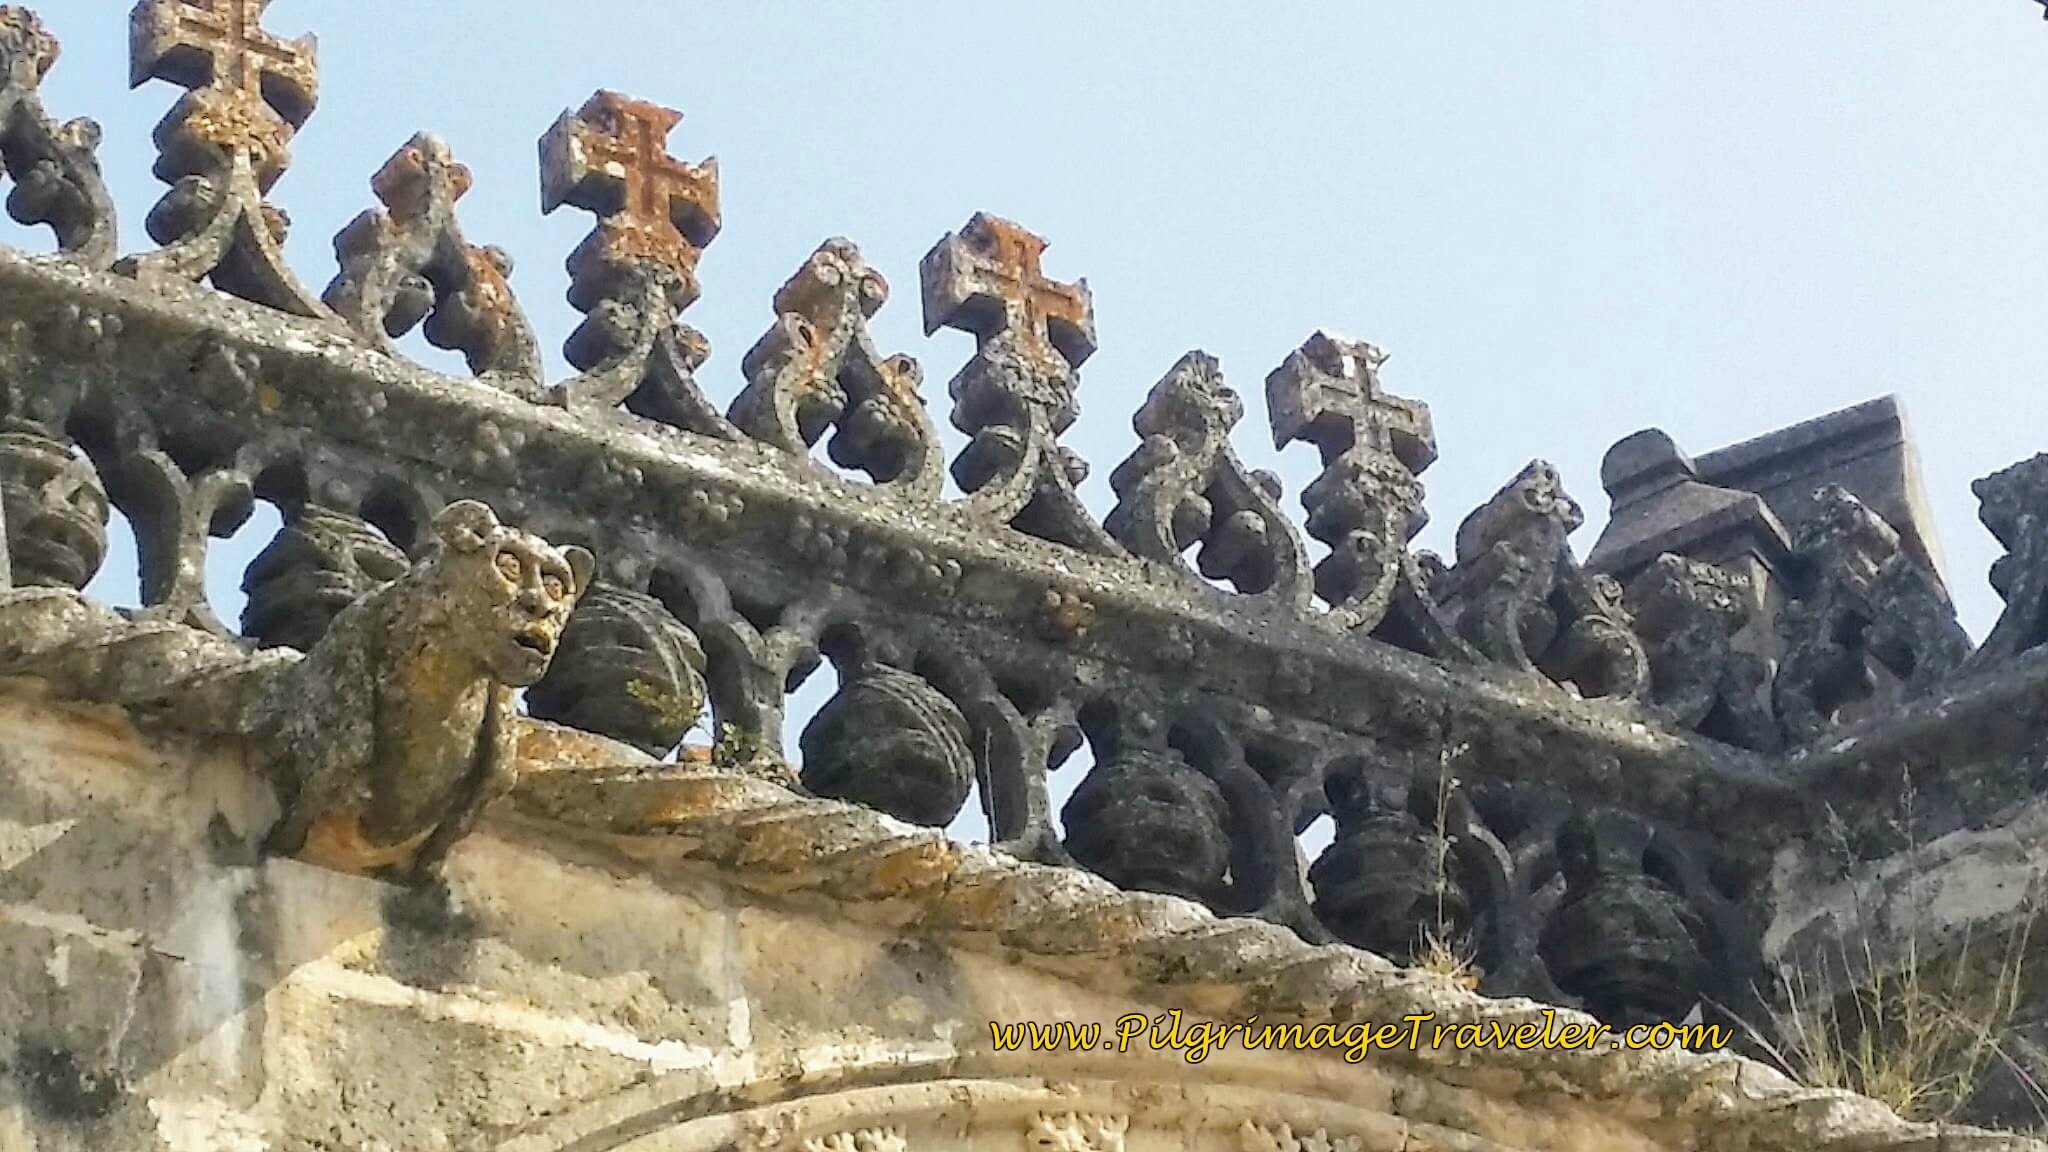 Close-up Manueline Embellishments on the Rooftop, Convento de Cristo, Tomar